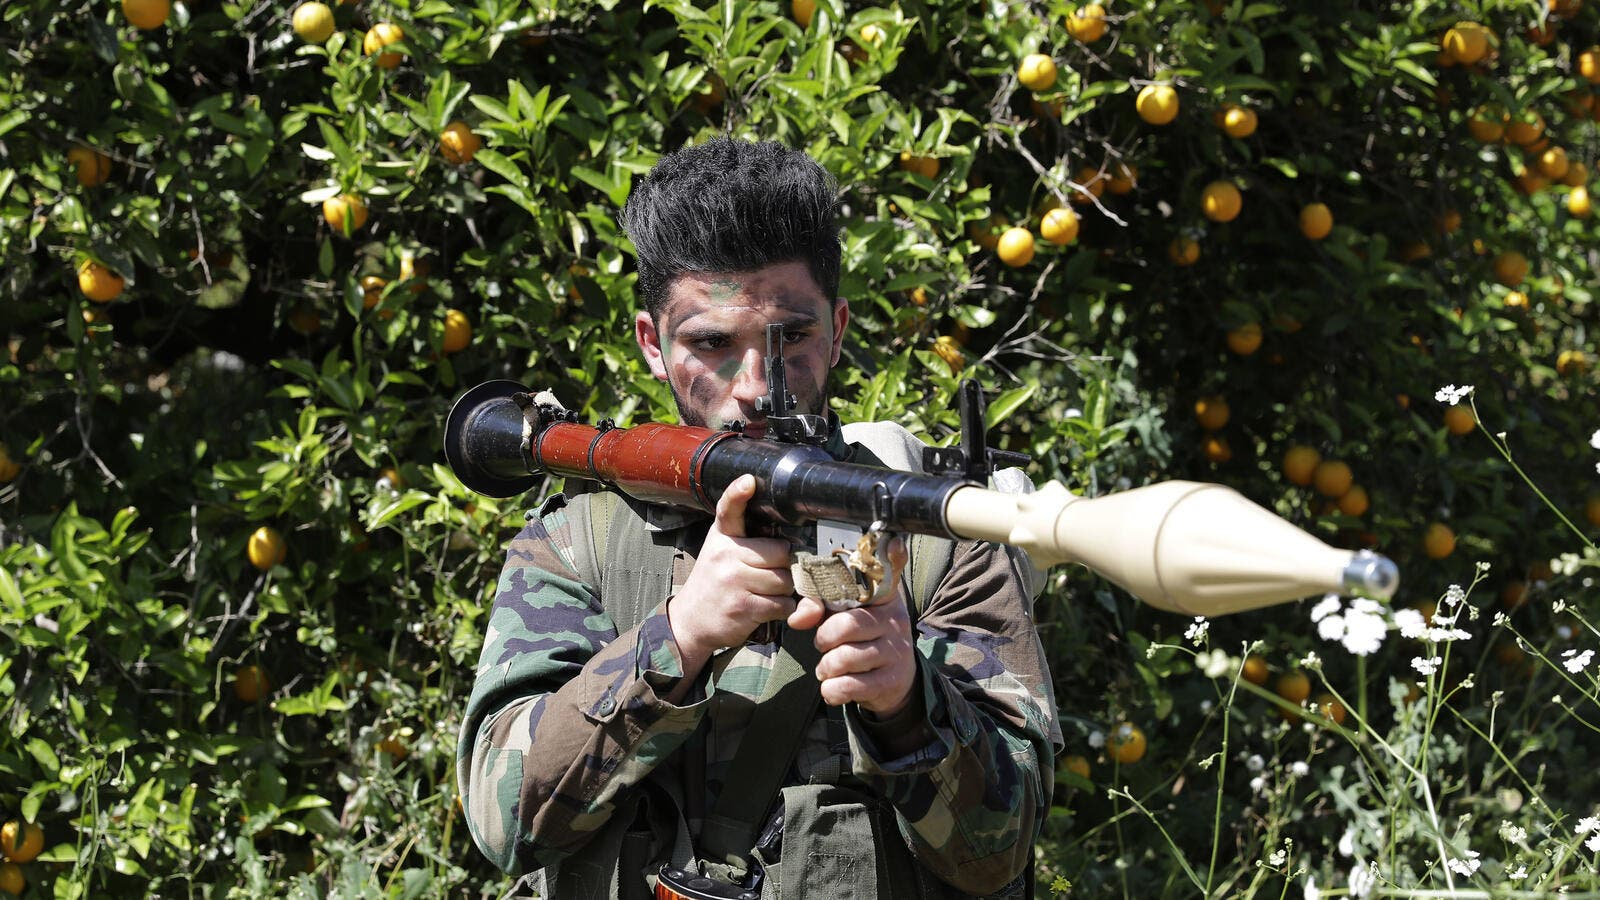 A Hezboallah fighter armed with an RPG stands near Lebanon's border with Israel, April 20 2017. (AFP/Joseph Eid)